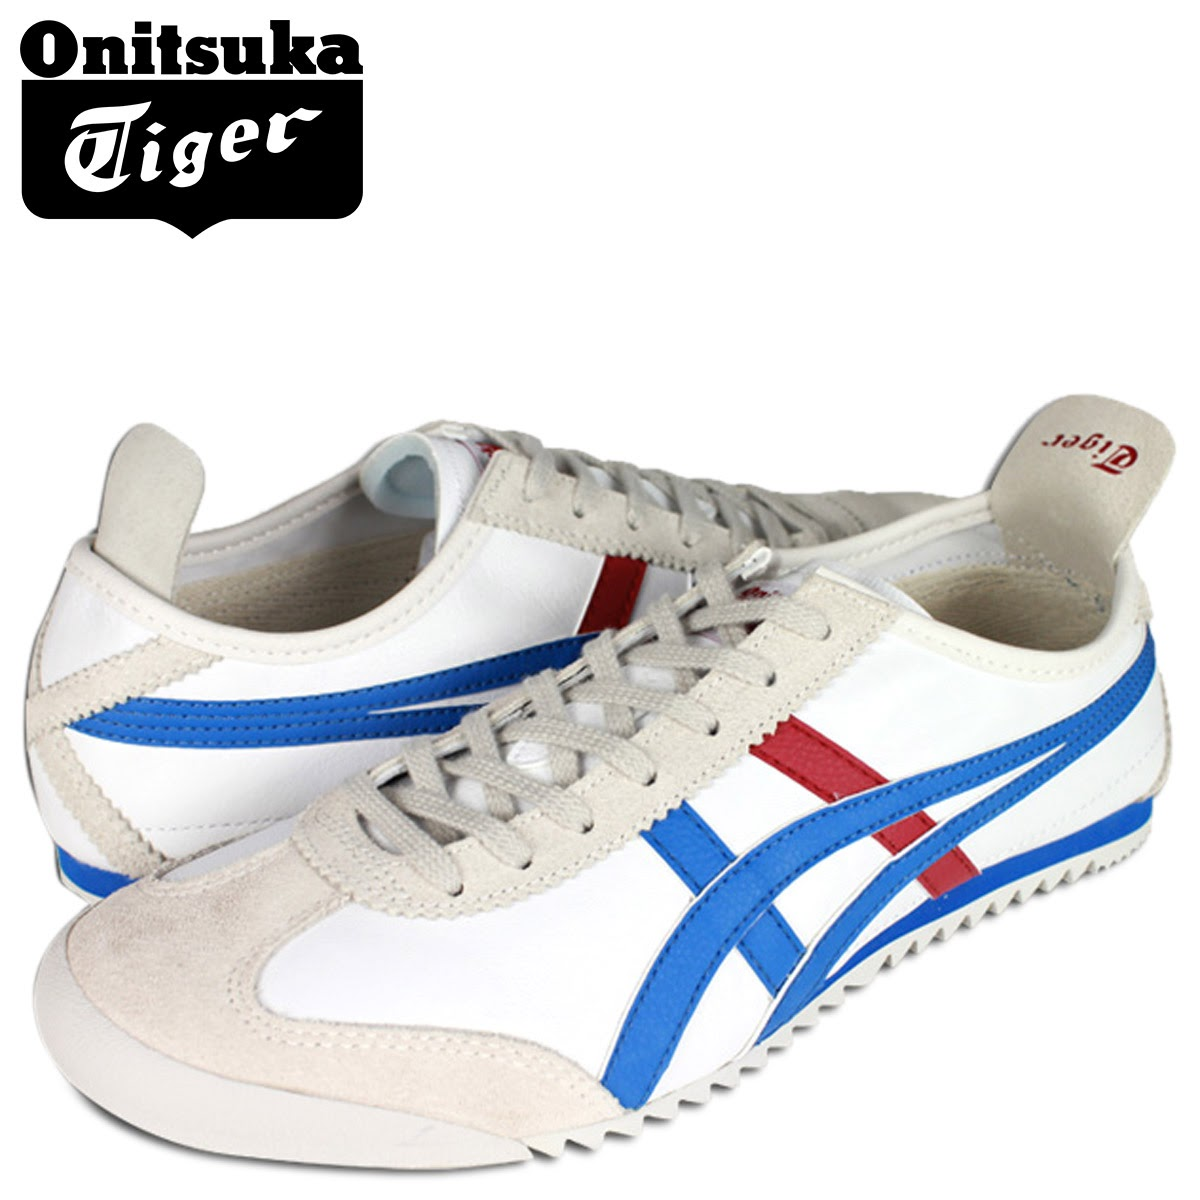 Classic Collections of ONITSUKA TIGER